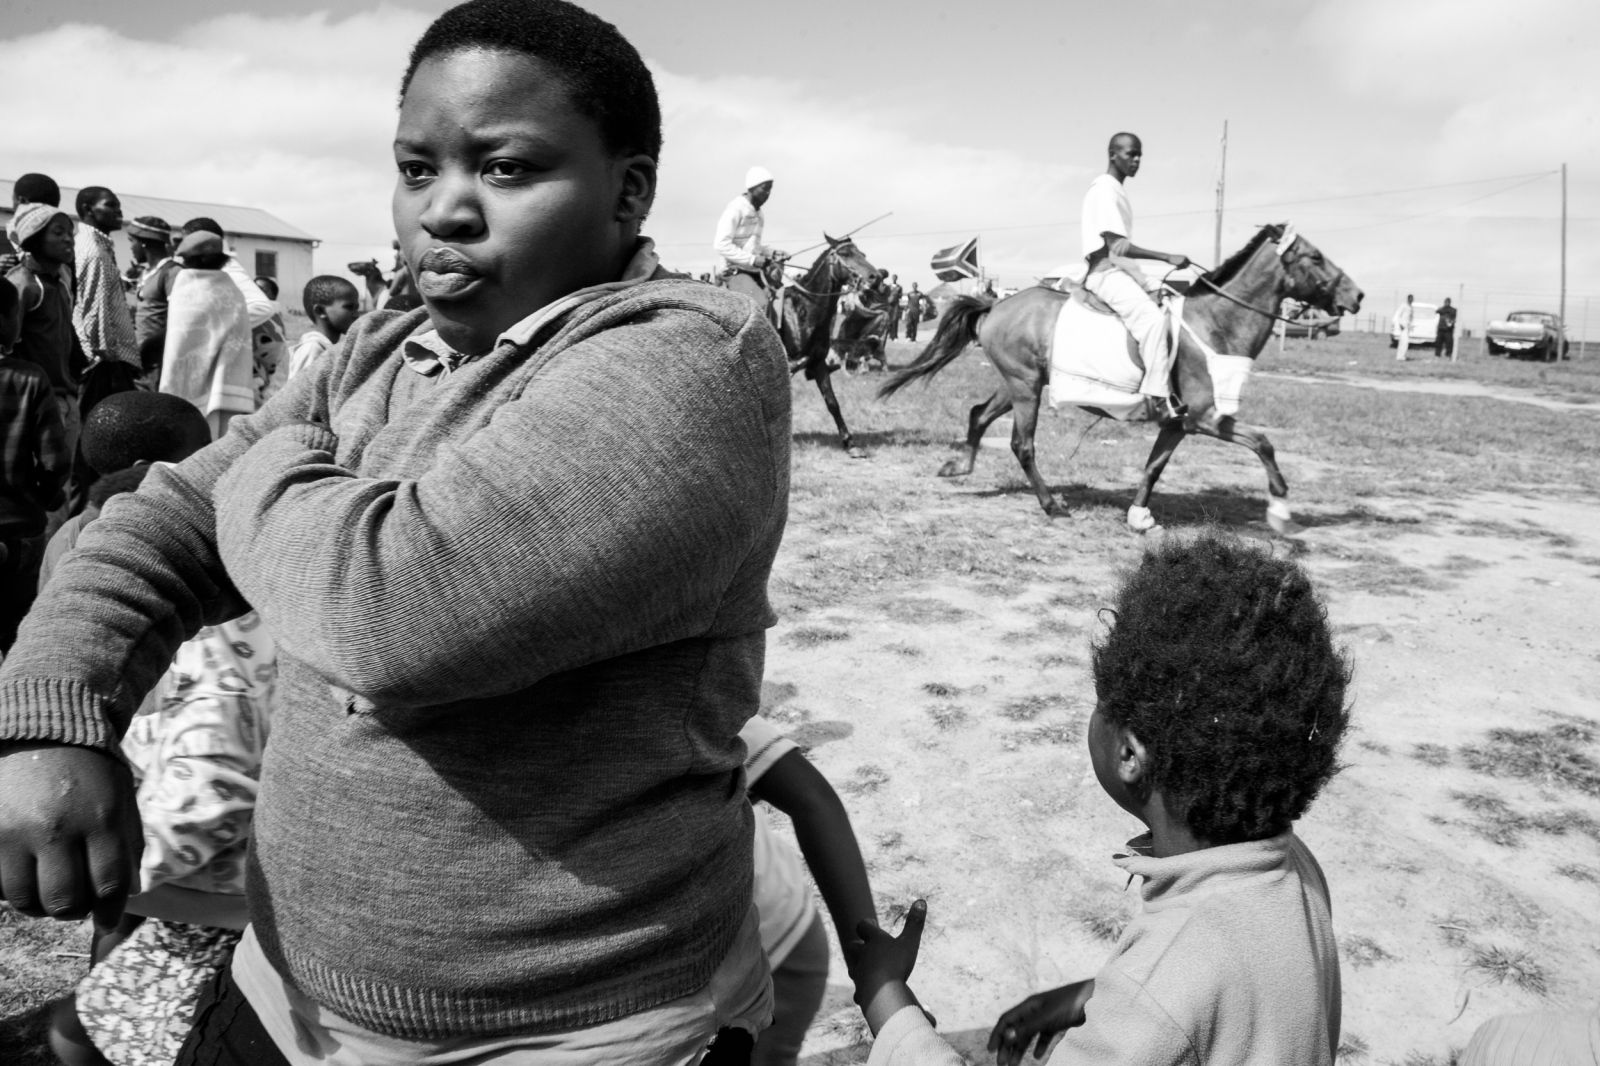 Art and Documentary Photography - Loading Nathalie_Bertrams_Sangomas_08.jpg